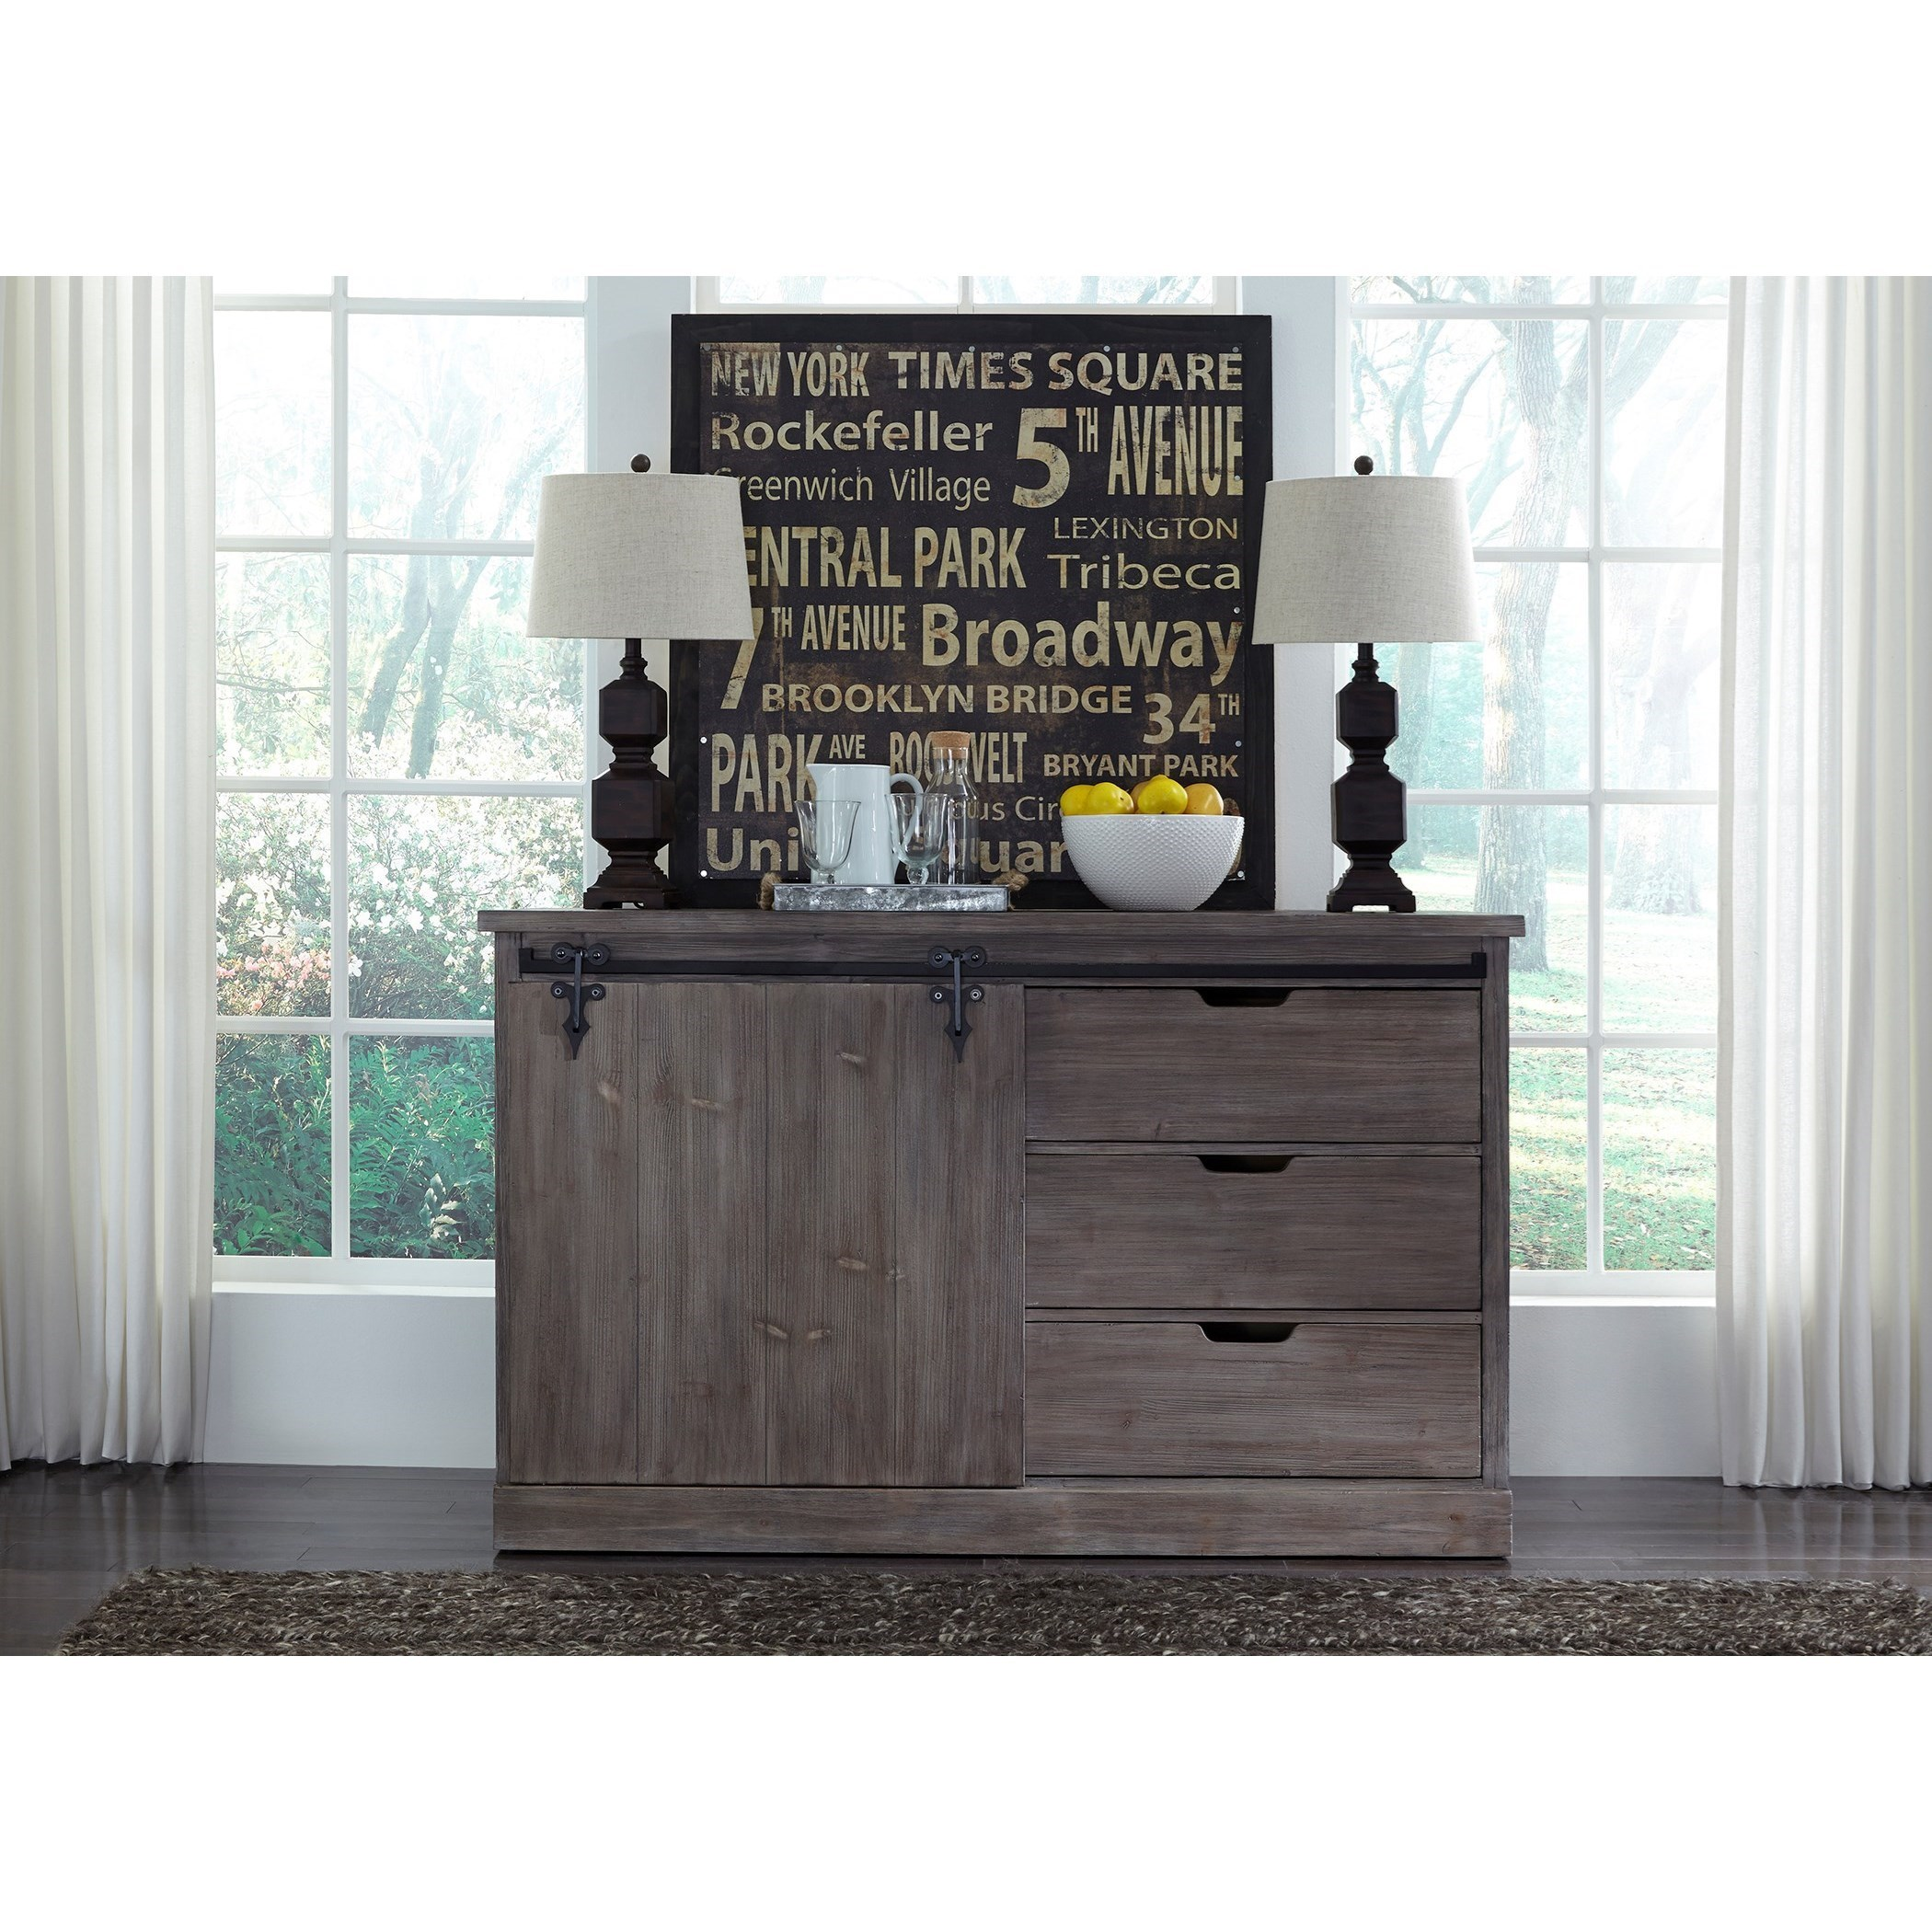 Server w/ Wired Brushed Weathered Gray Finish